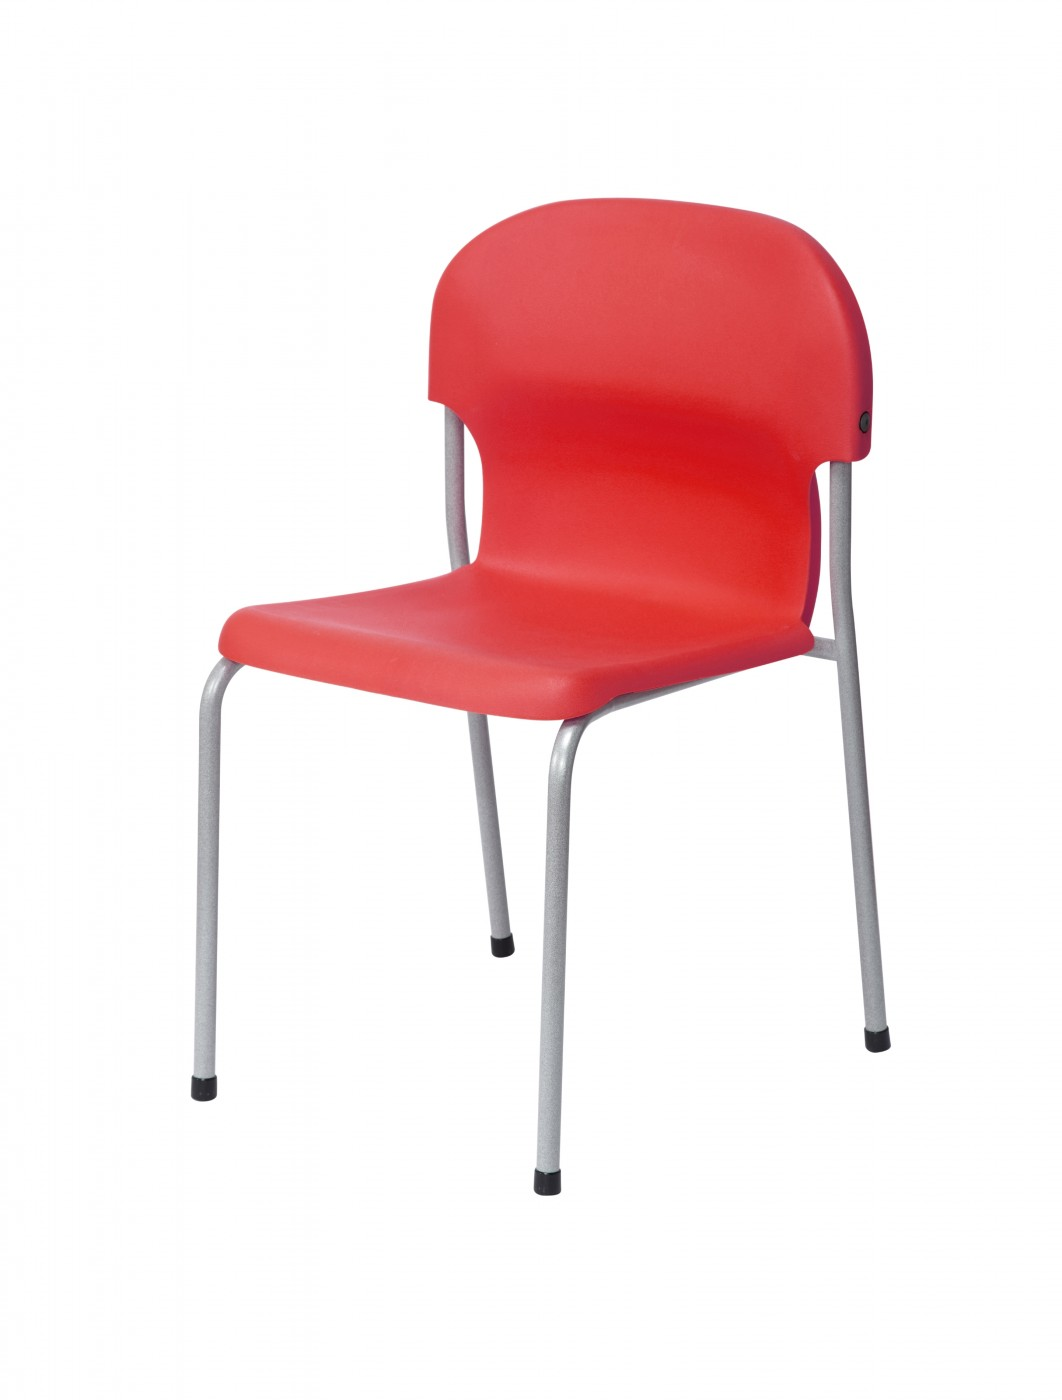 metalliform st chairs. metalliform chair 2000 chairs - age 4-6 years polypropylene classroom 2018 enlarged st r